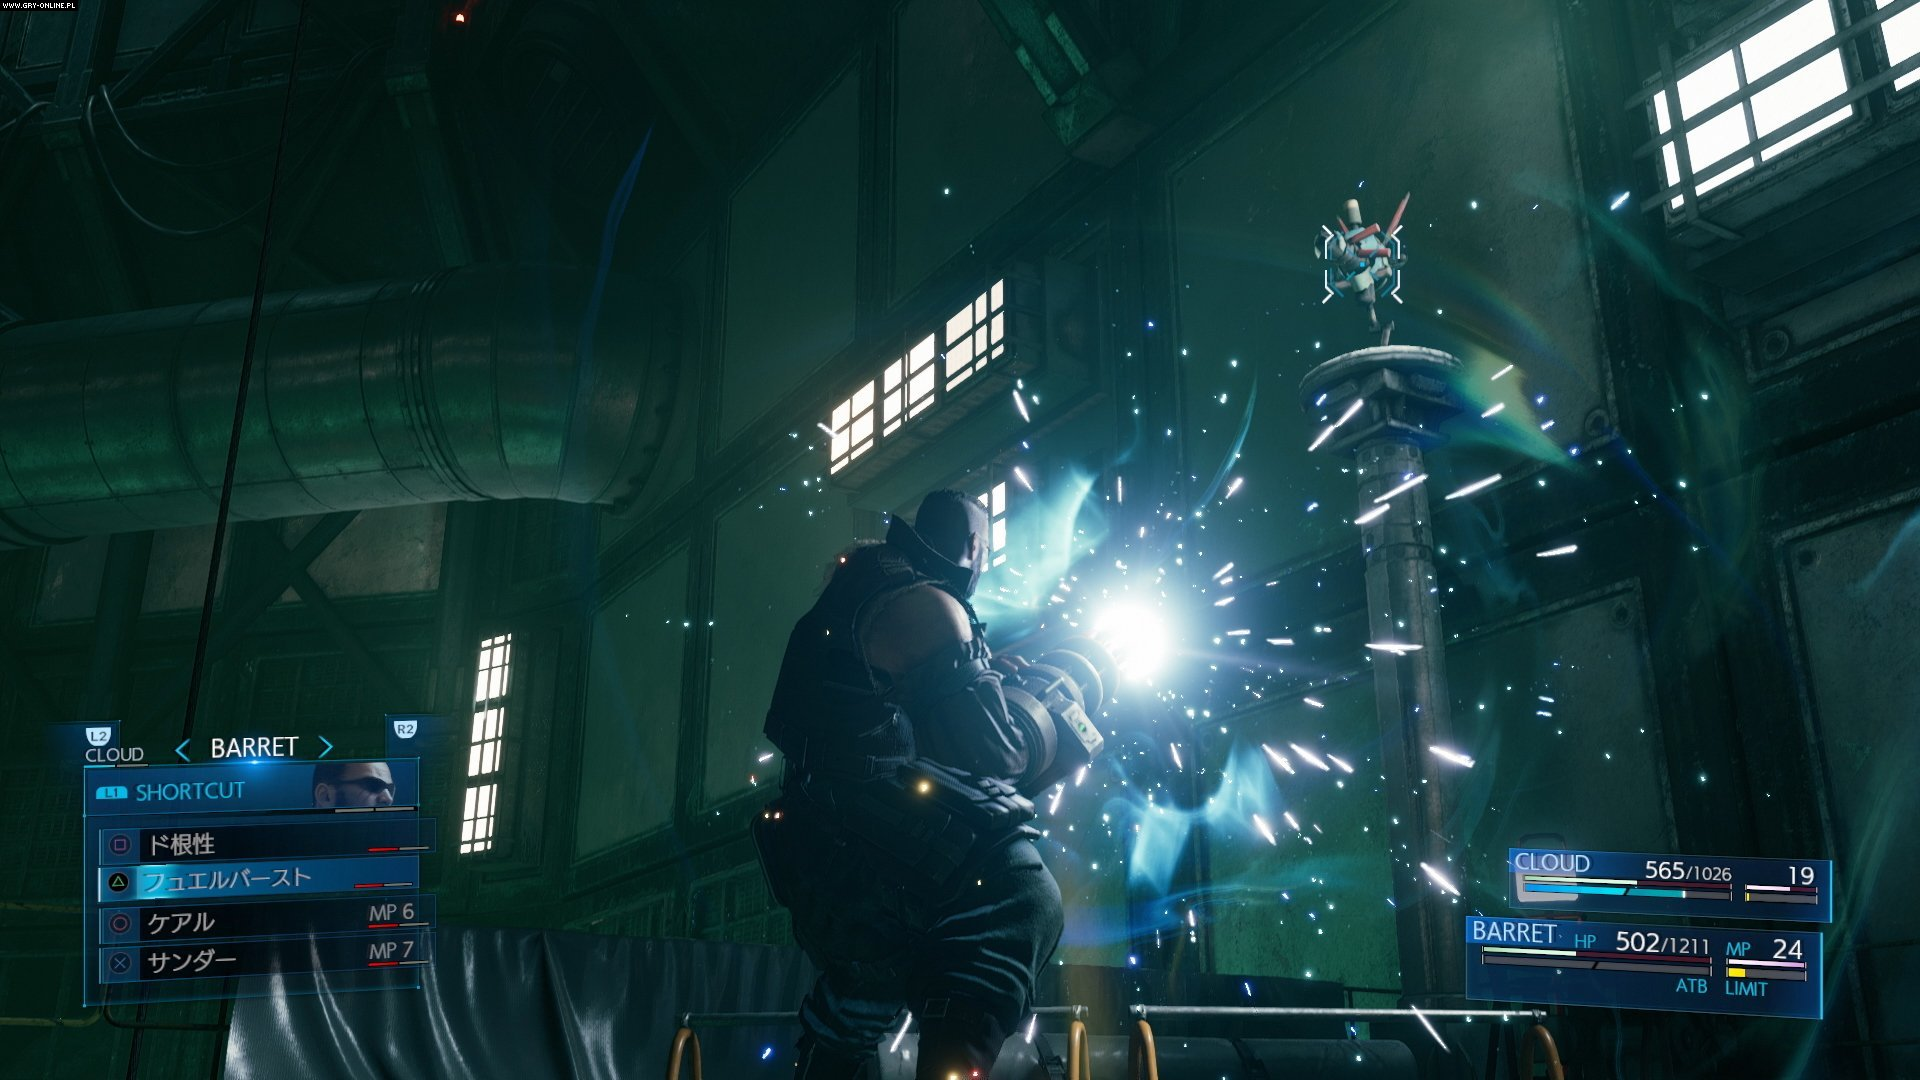 Final Fantasy VII Remake PS4 Games Image 42/71, Square-Enix / Eidos